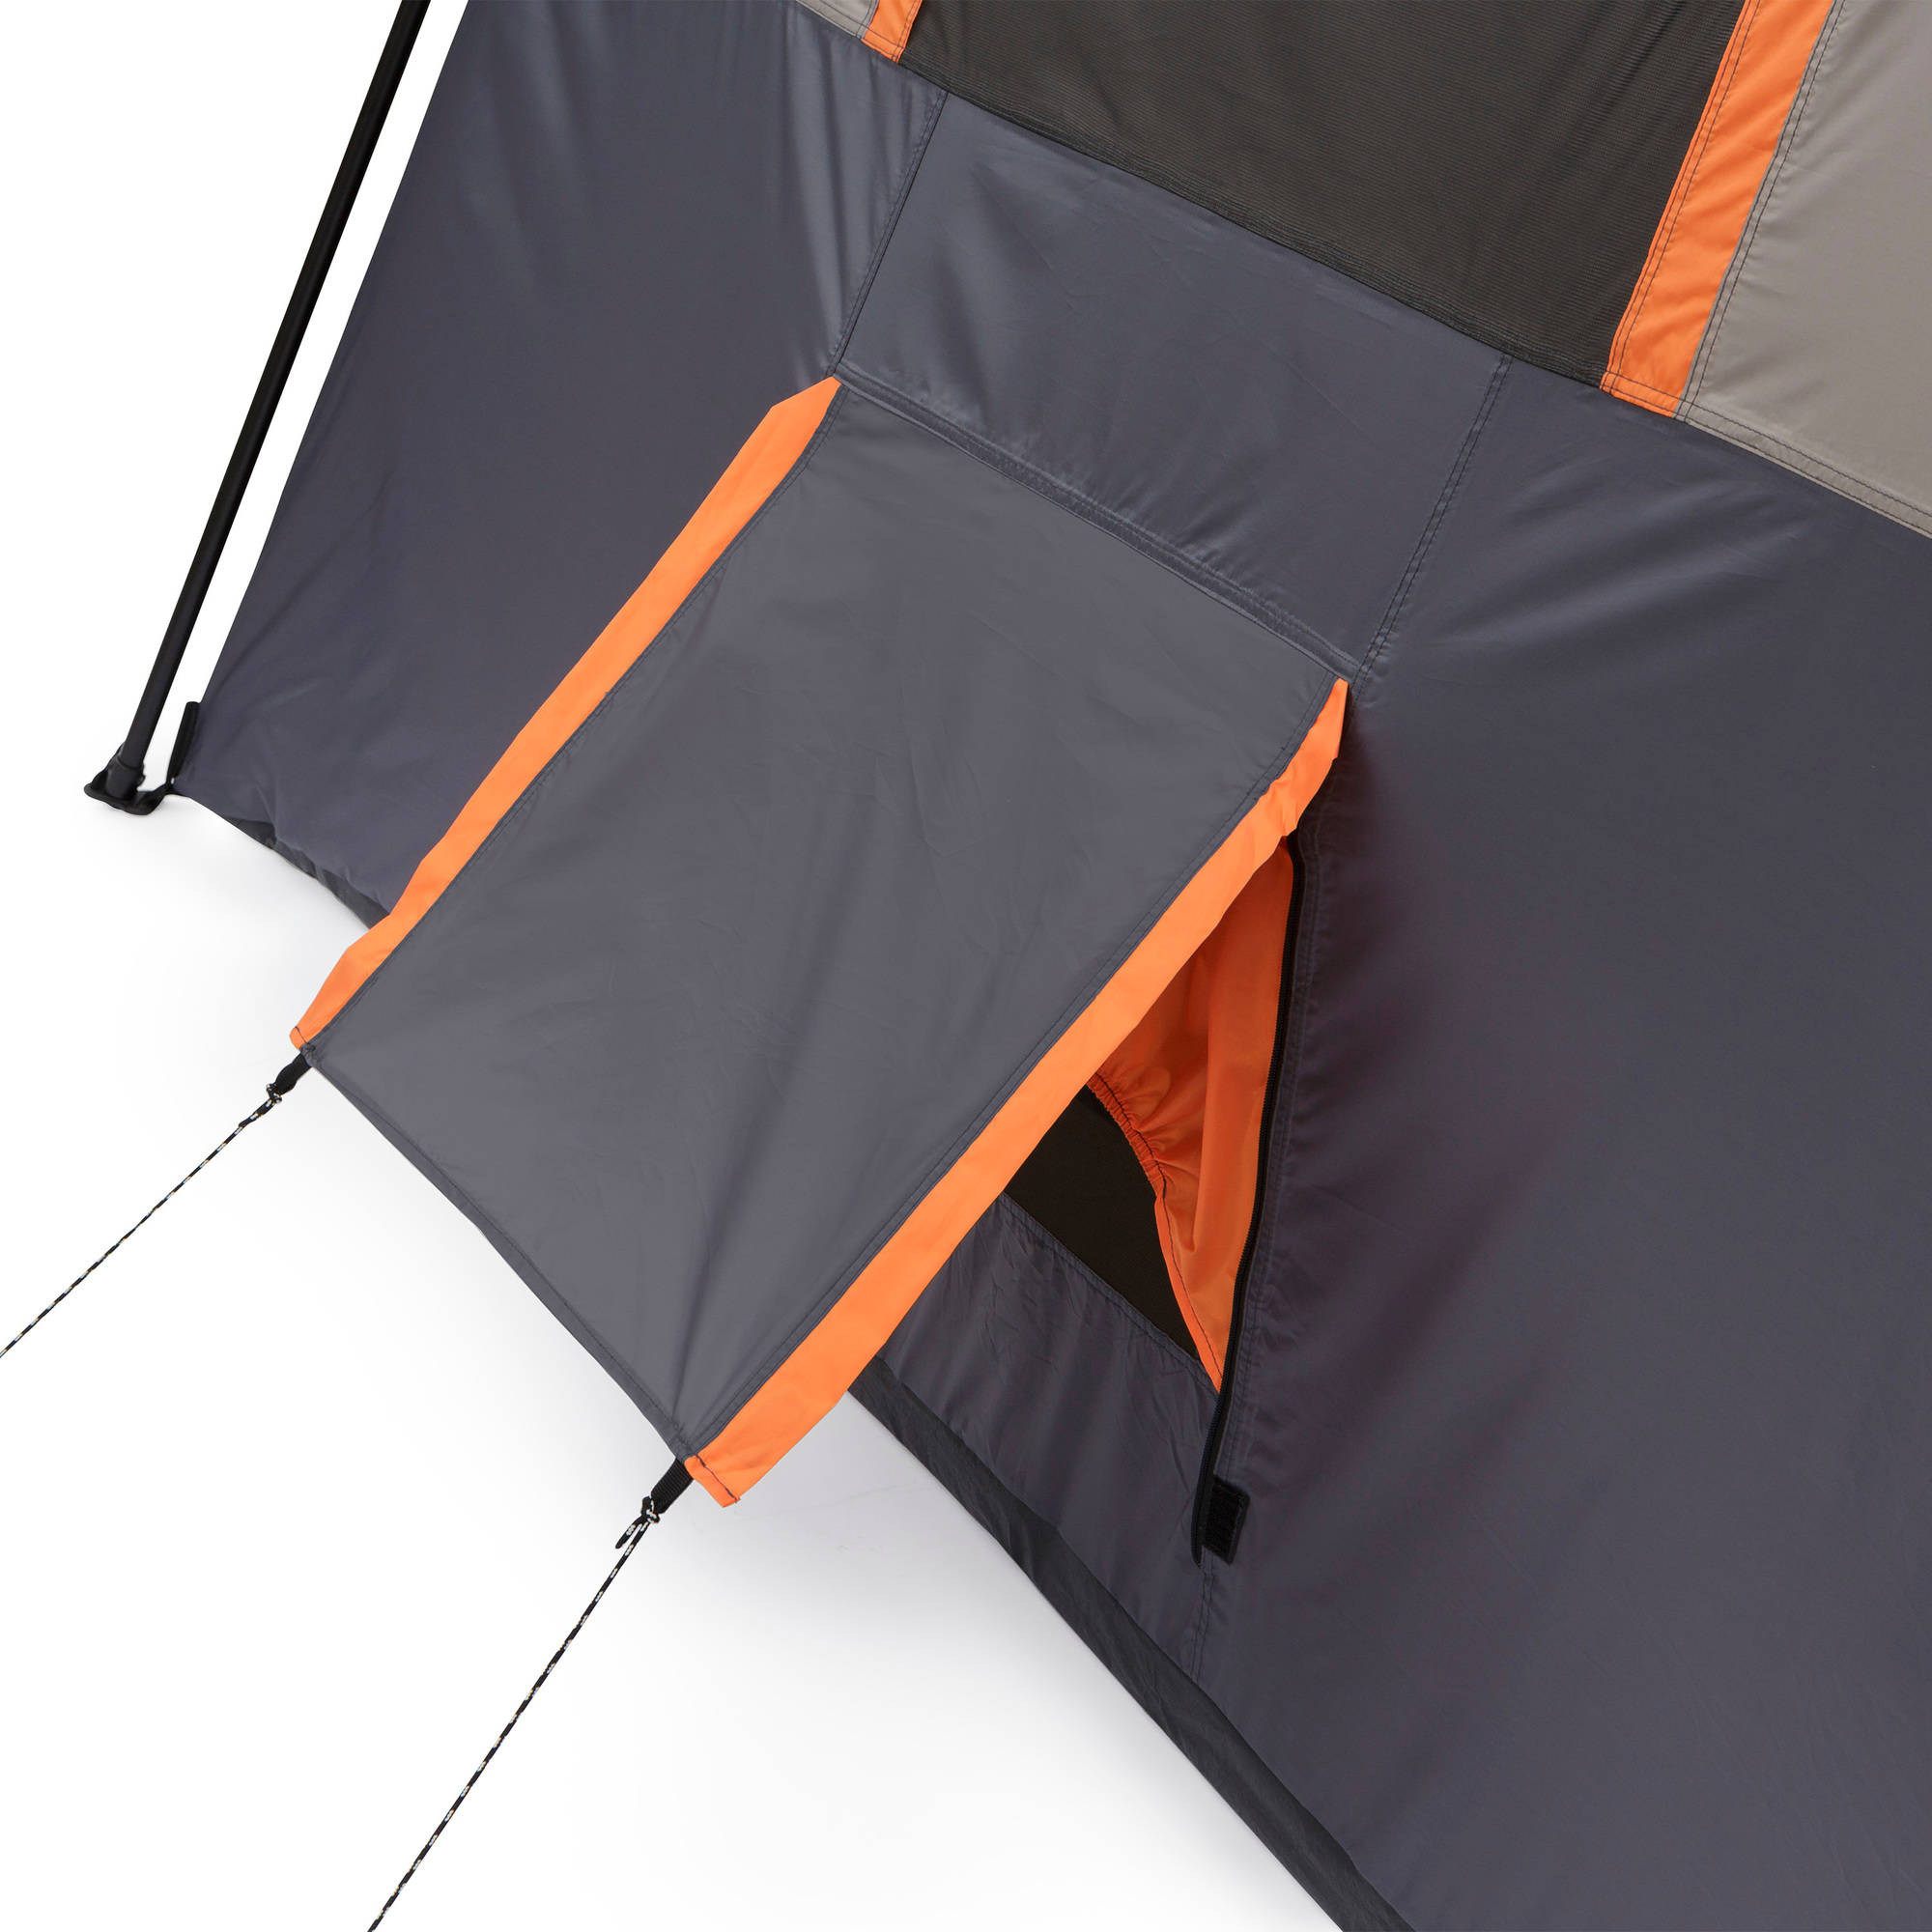 Ozark Trail 12 Person 3 Room Instant Cabin Tent With 2 Airbeds And 2 Chairs Value Bundle - Walmart.com Sc 1 St Walmart  sc 1 st  memphite.com & Ozark Trail 16 X 10 Tent u0026